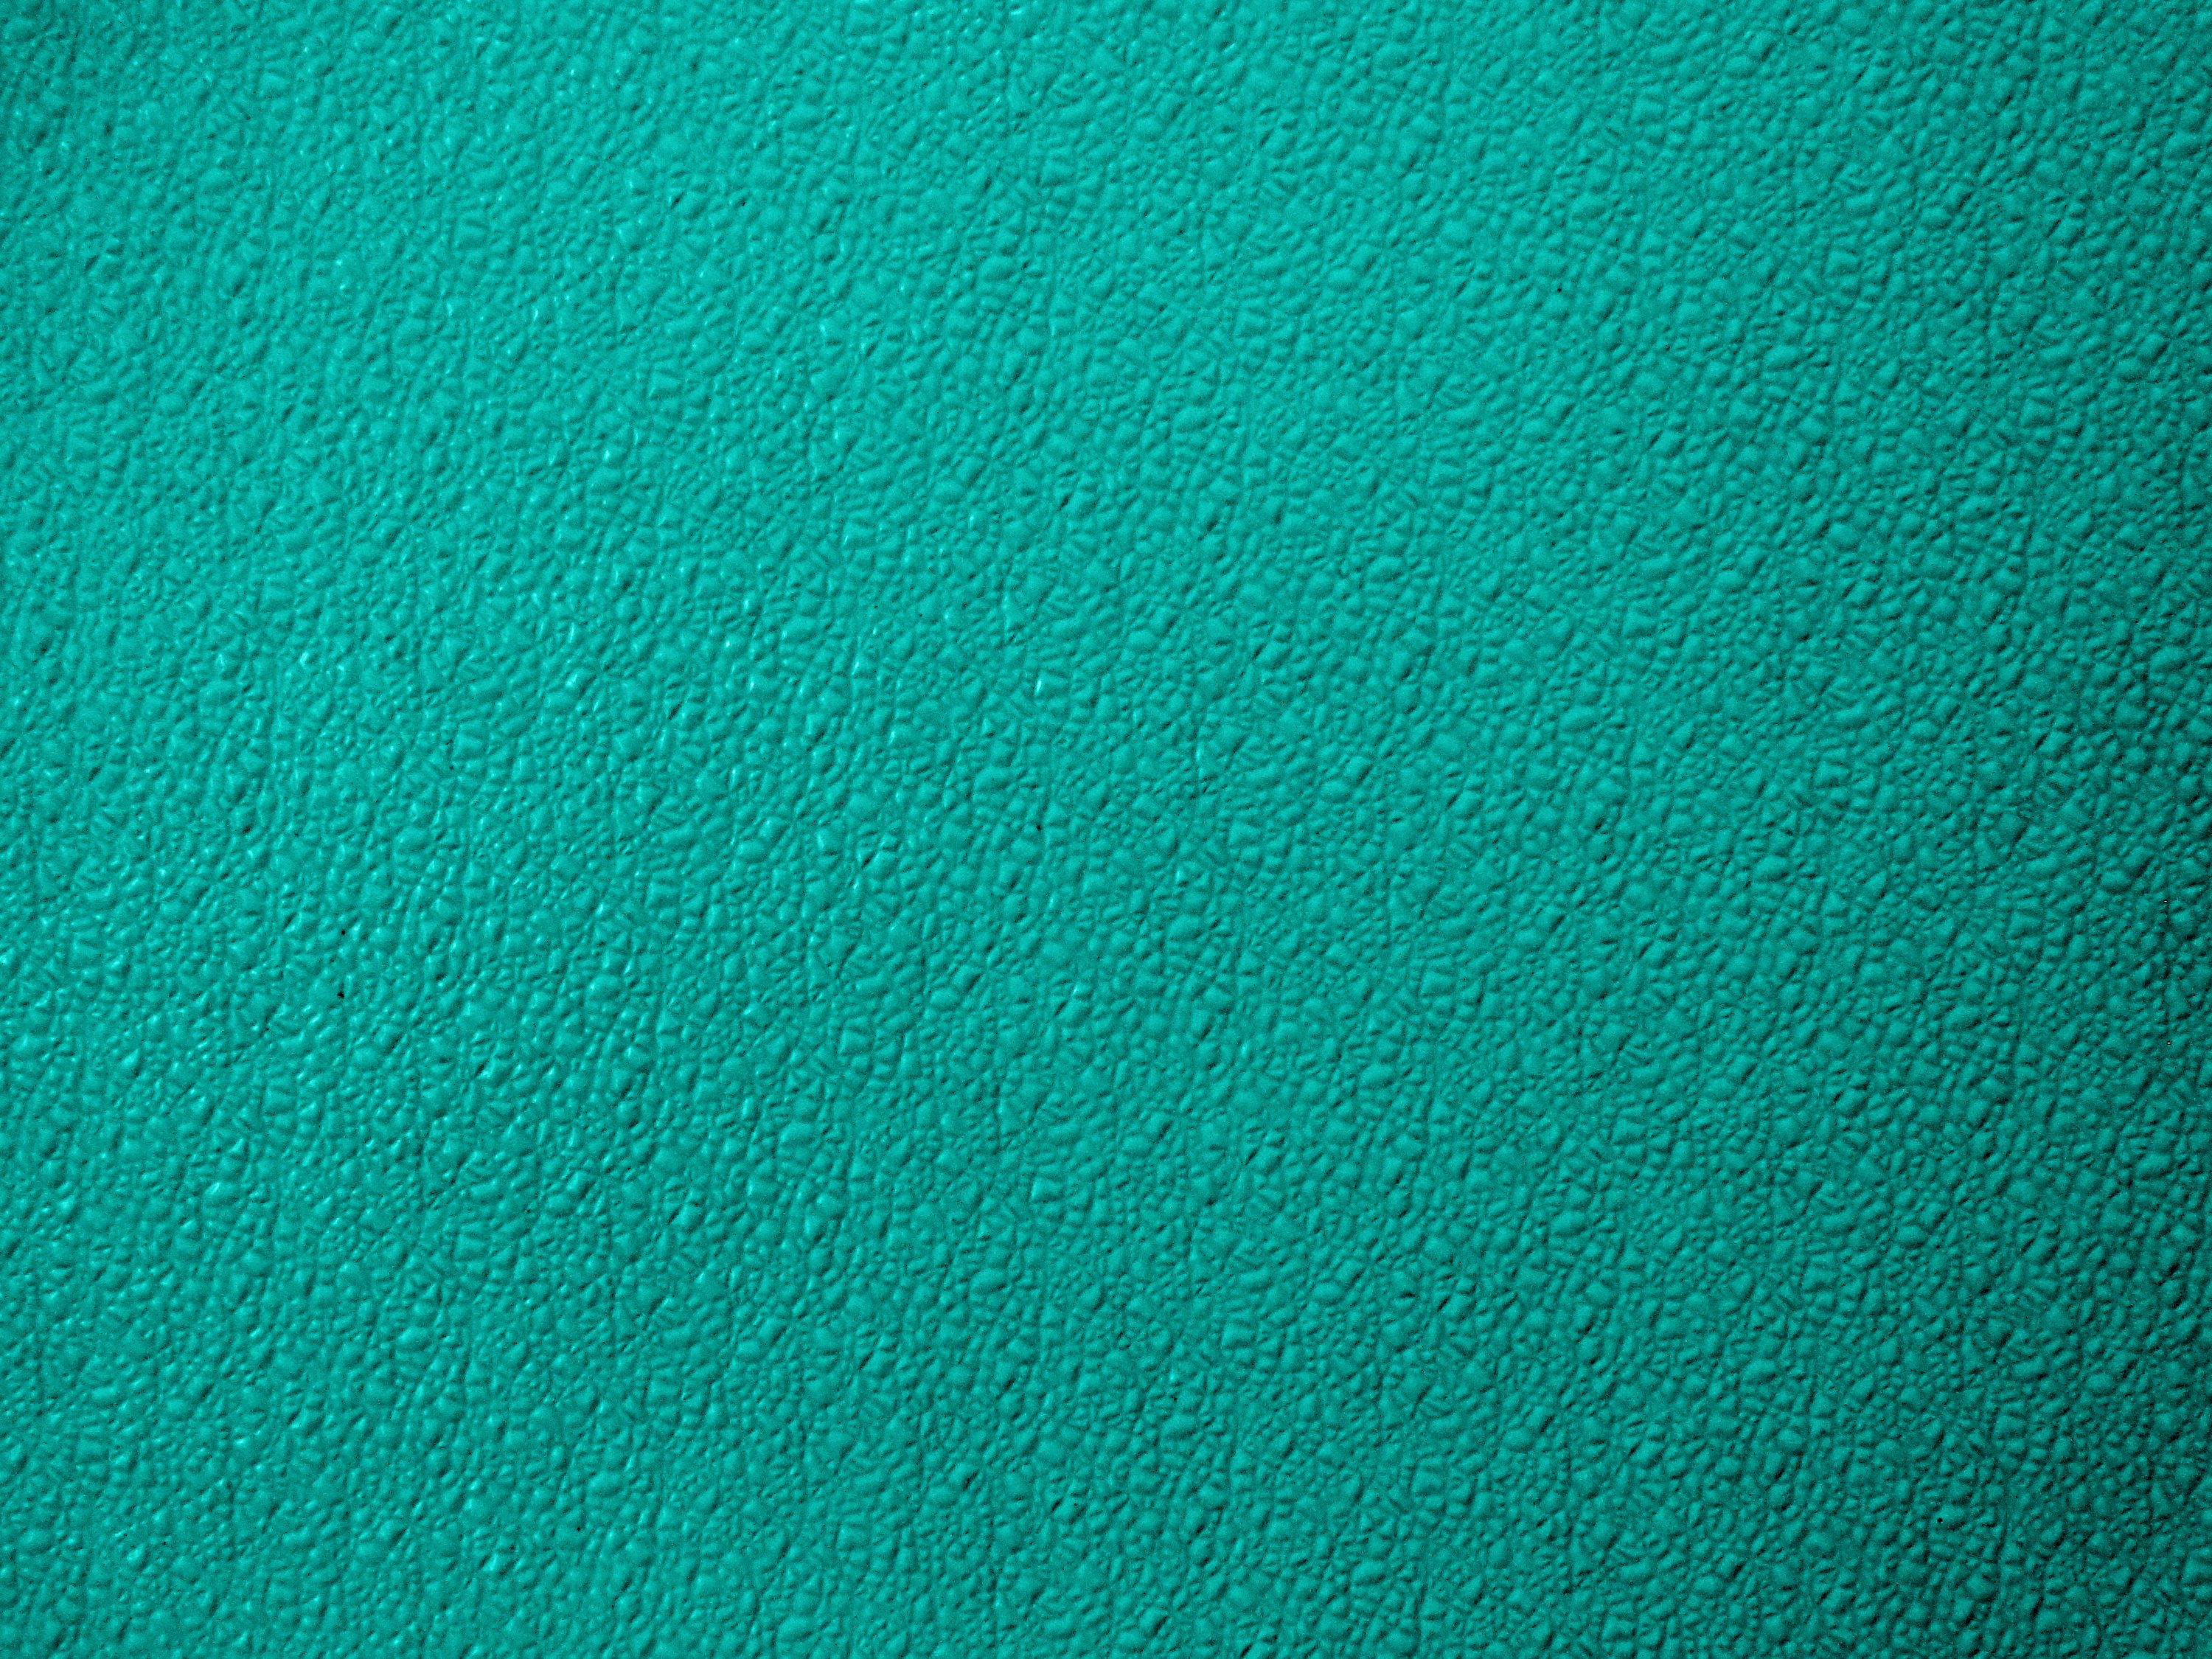 The Texture Of Teal And Turquoise: Bumpy Turquoise Plastic Texture Picture